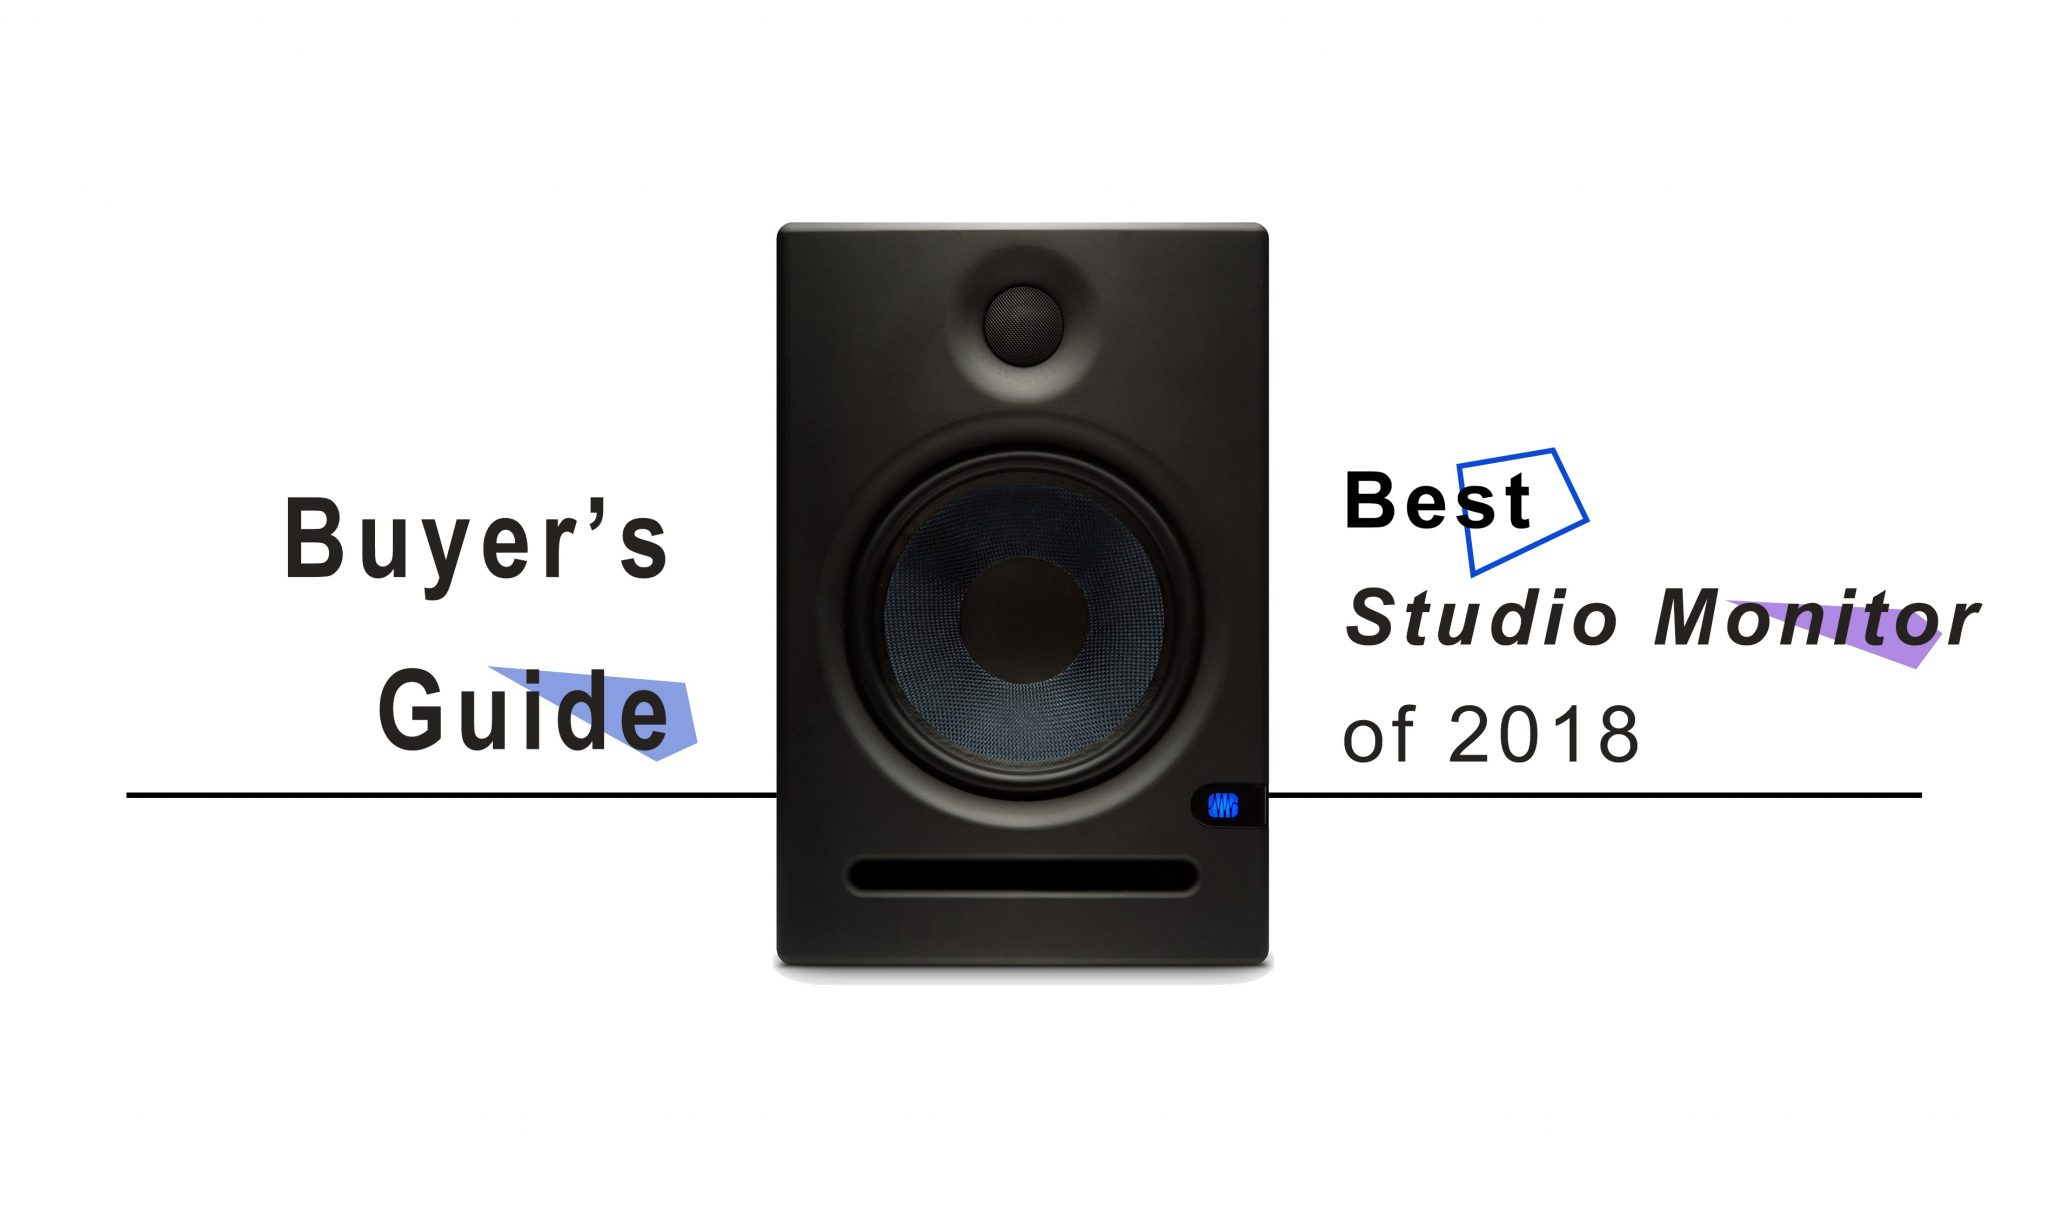 Best Studio Monitor of 2018